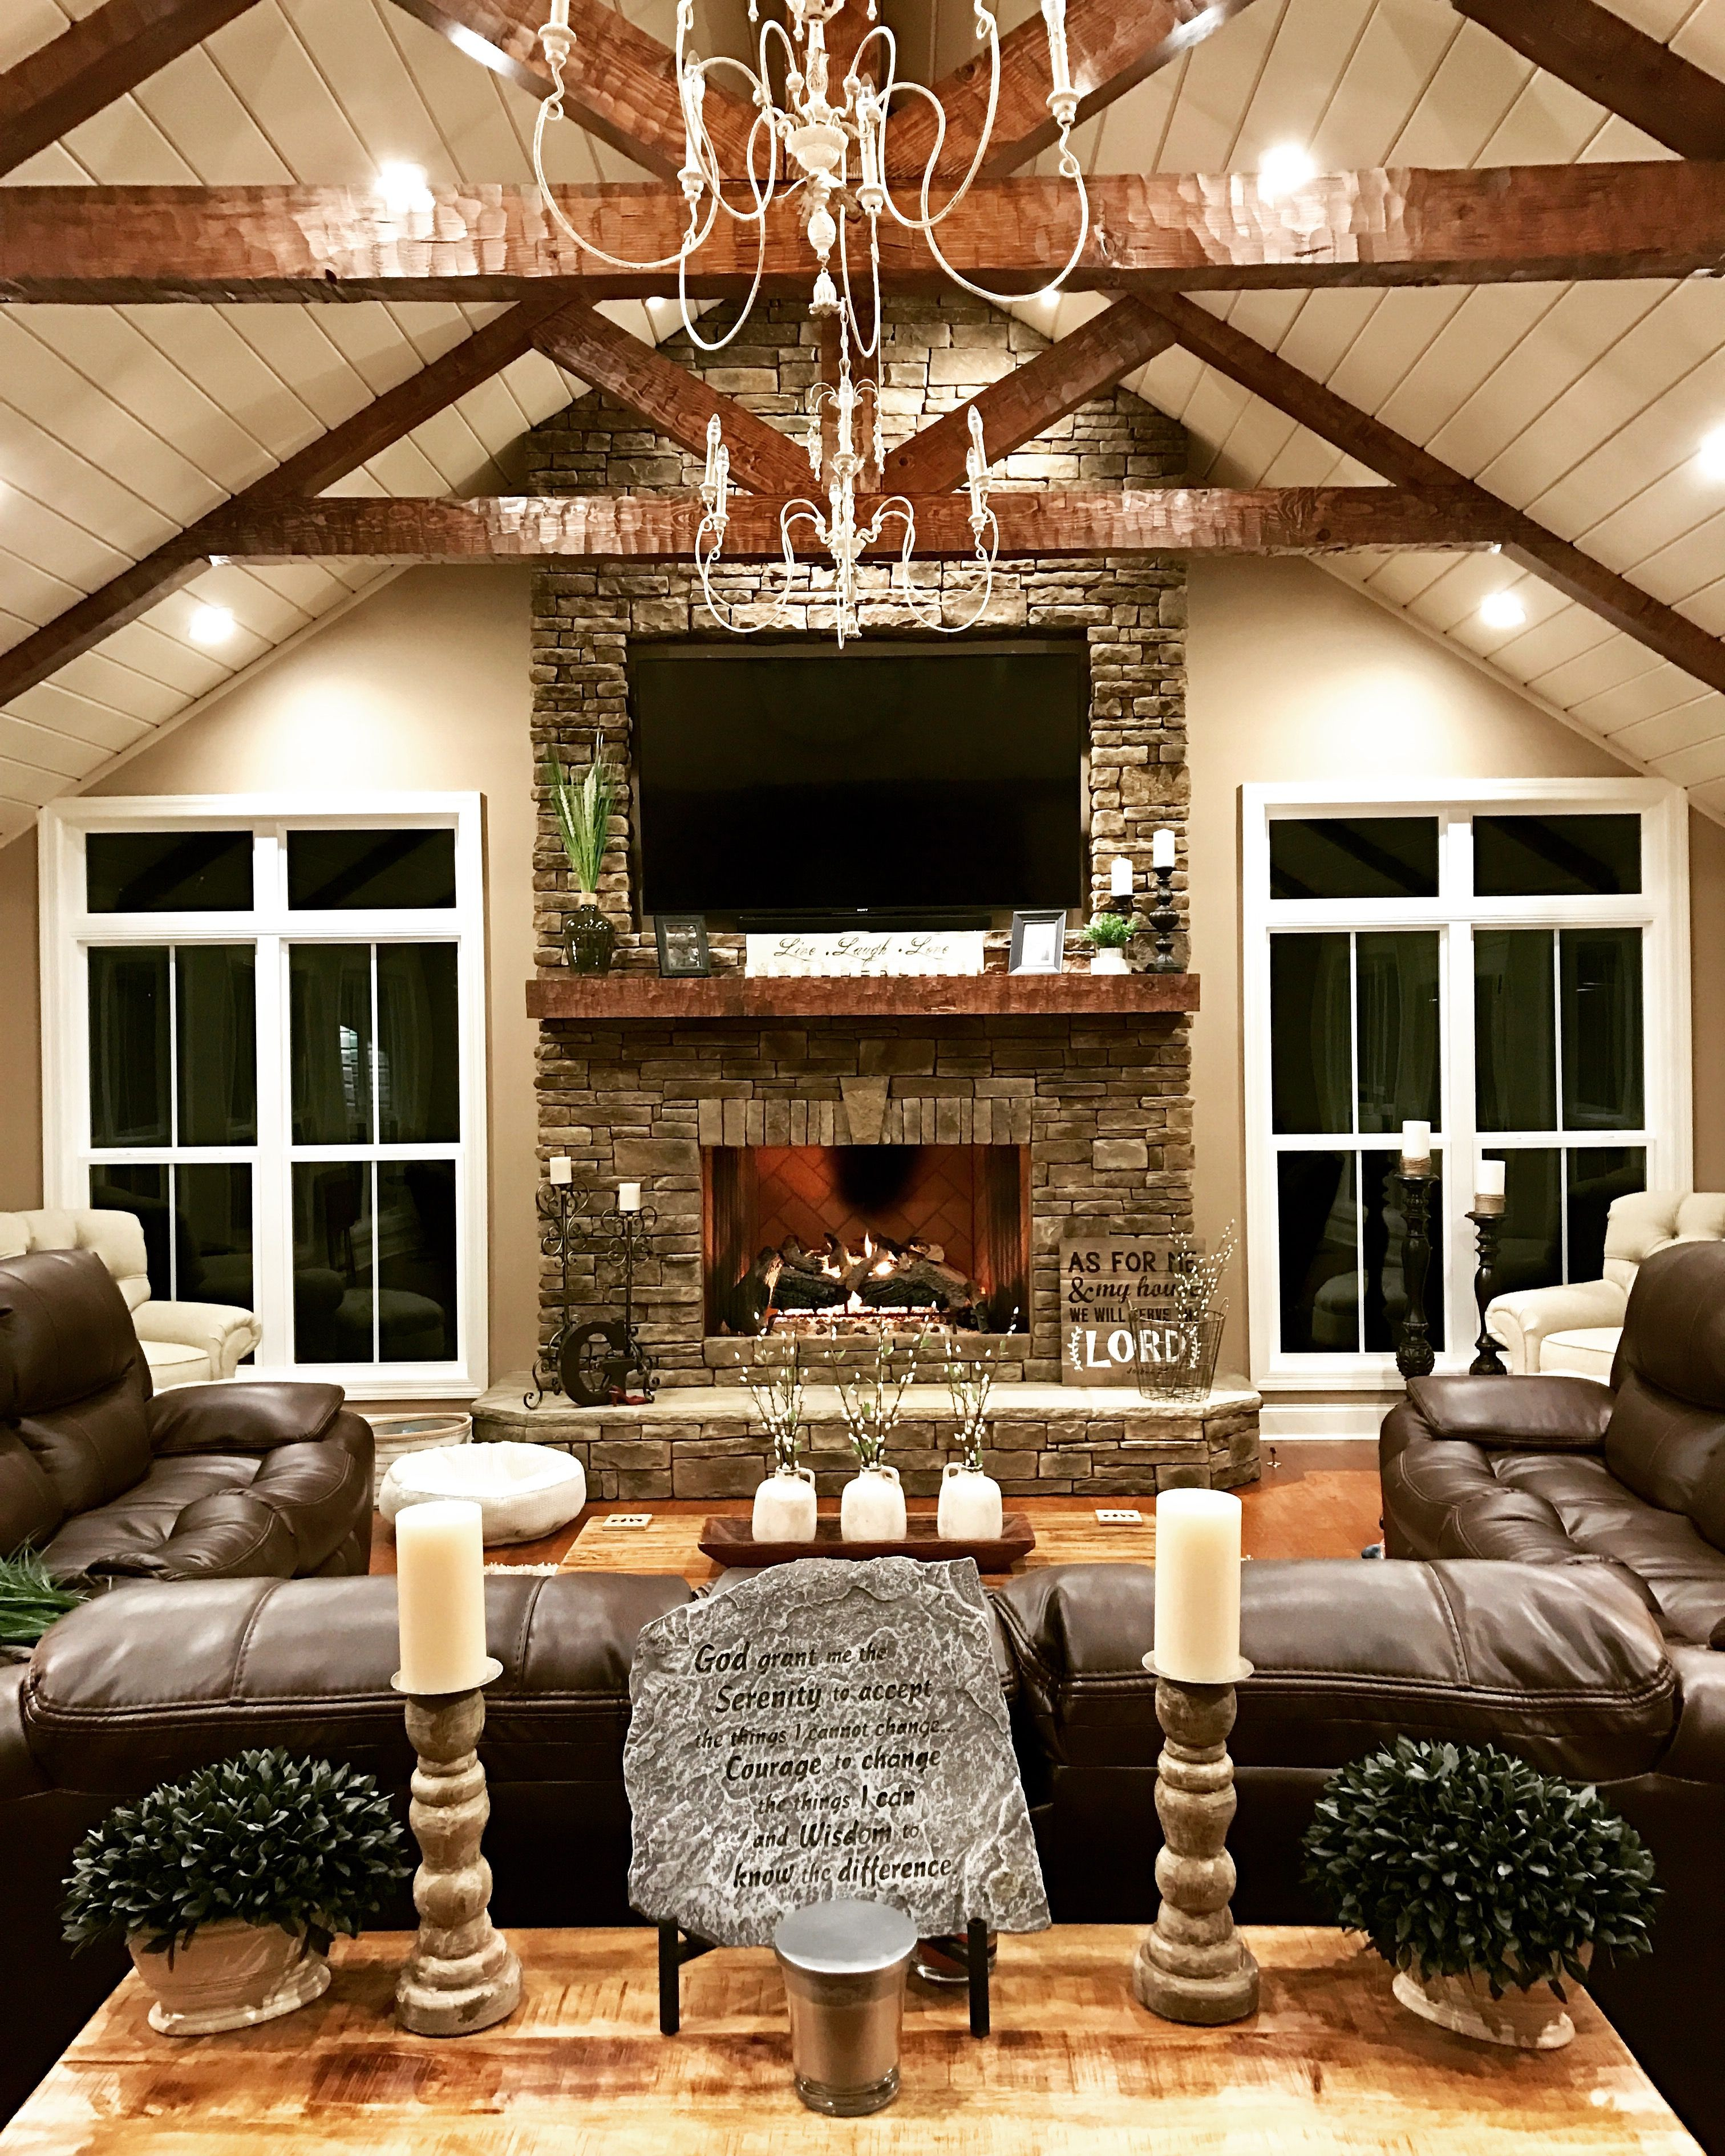 Fireplaces Great Rooms And Room: The Fireplace, The Beams, The Shiplap And The Big Windows. (With Images)